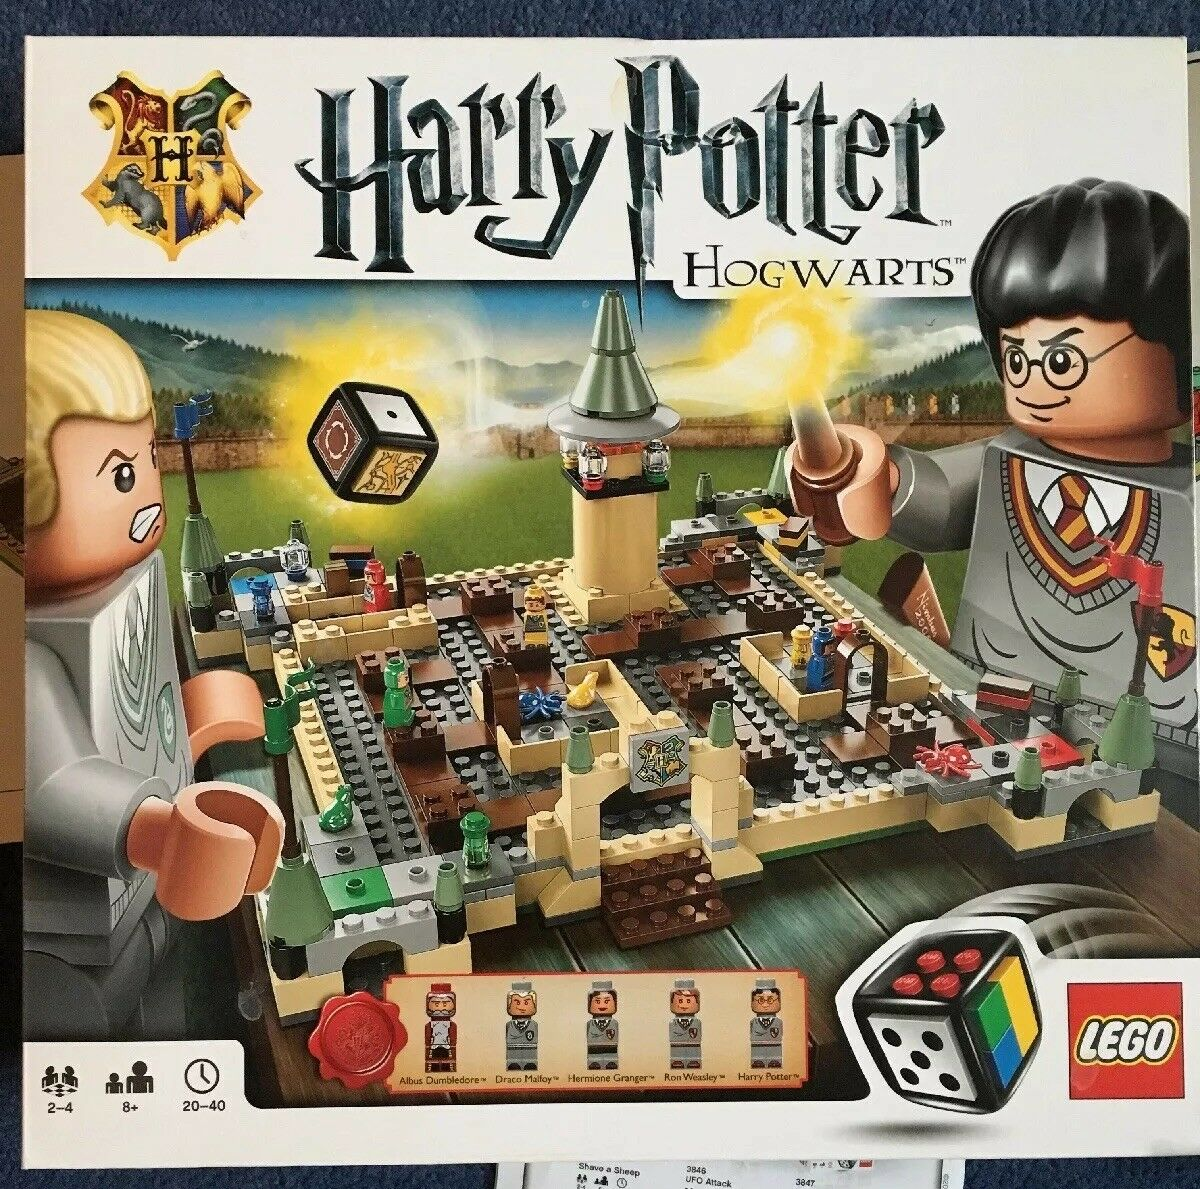 LEGO 3862 Harry Potter HOGWARTS BOARD GAME 100% Complete with Instructions